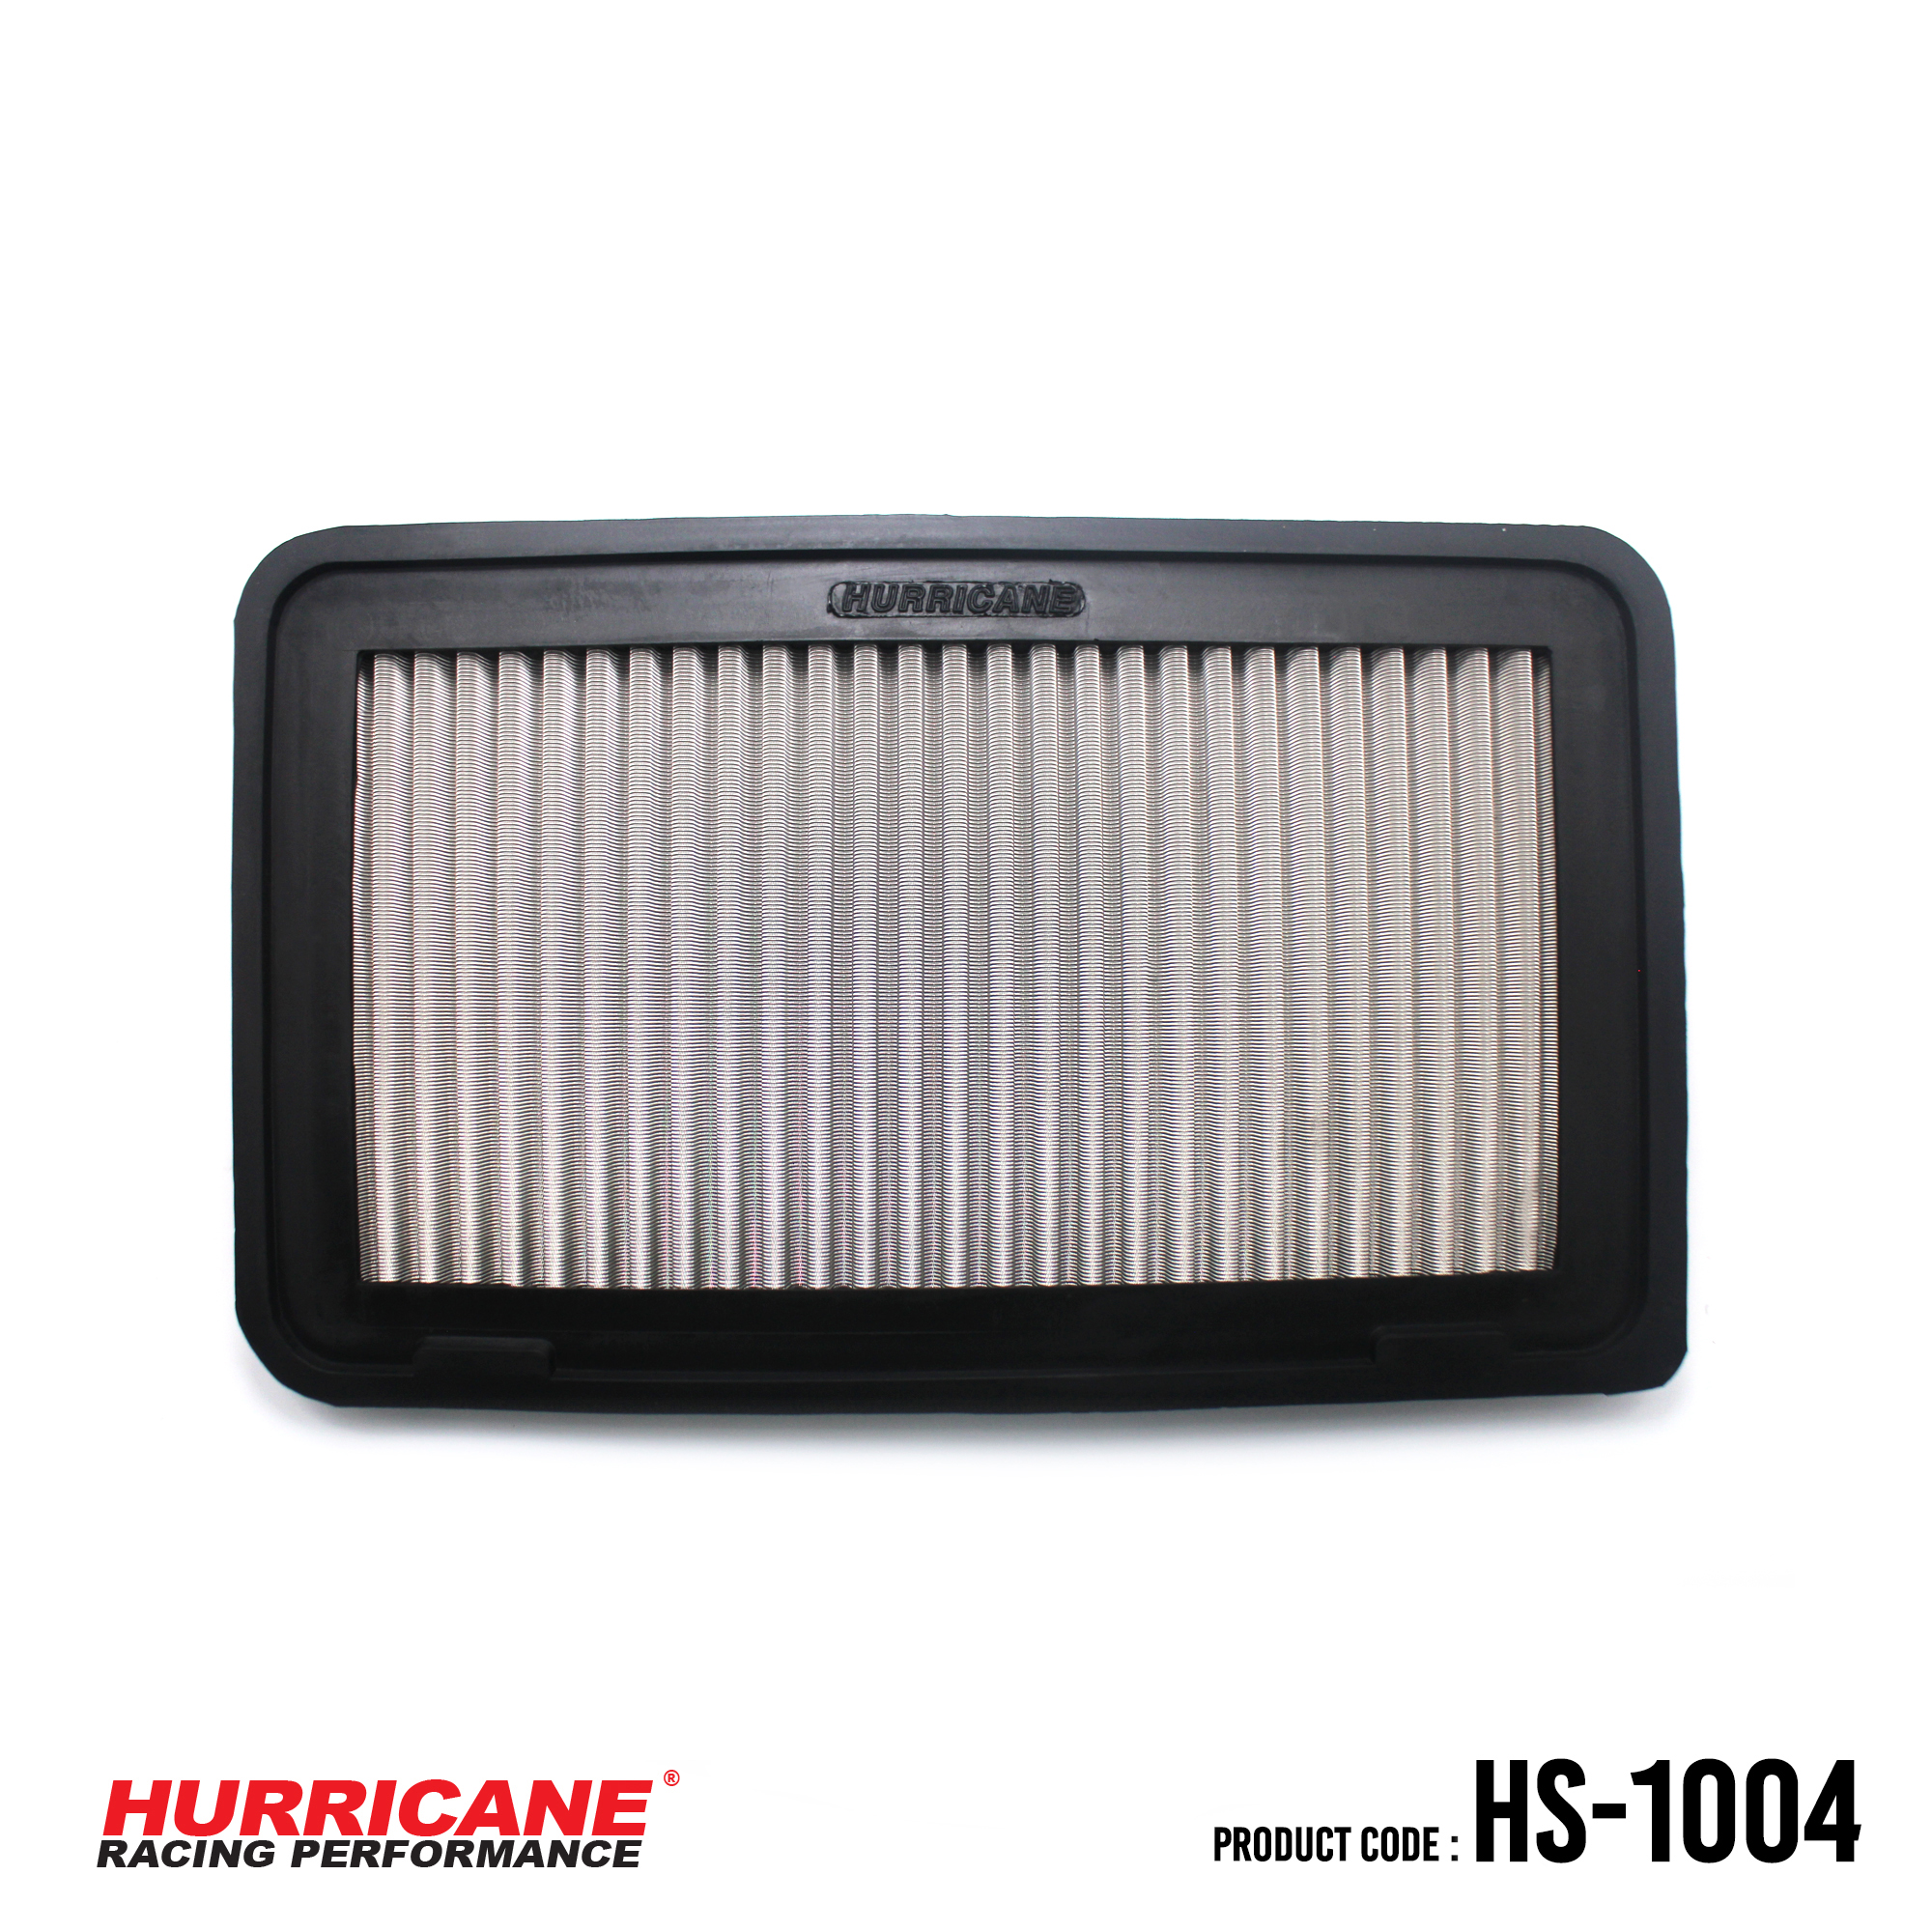 HURRICANE STAINLESS STEEL AIR FILTER FOR HS-1004 FordMazda